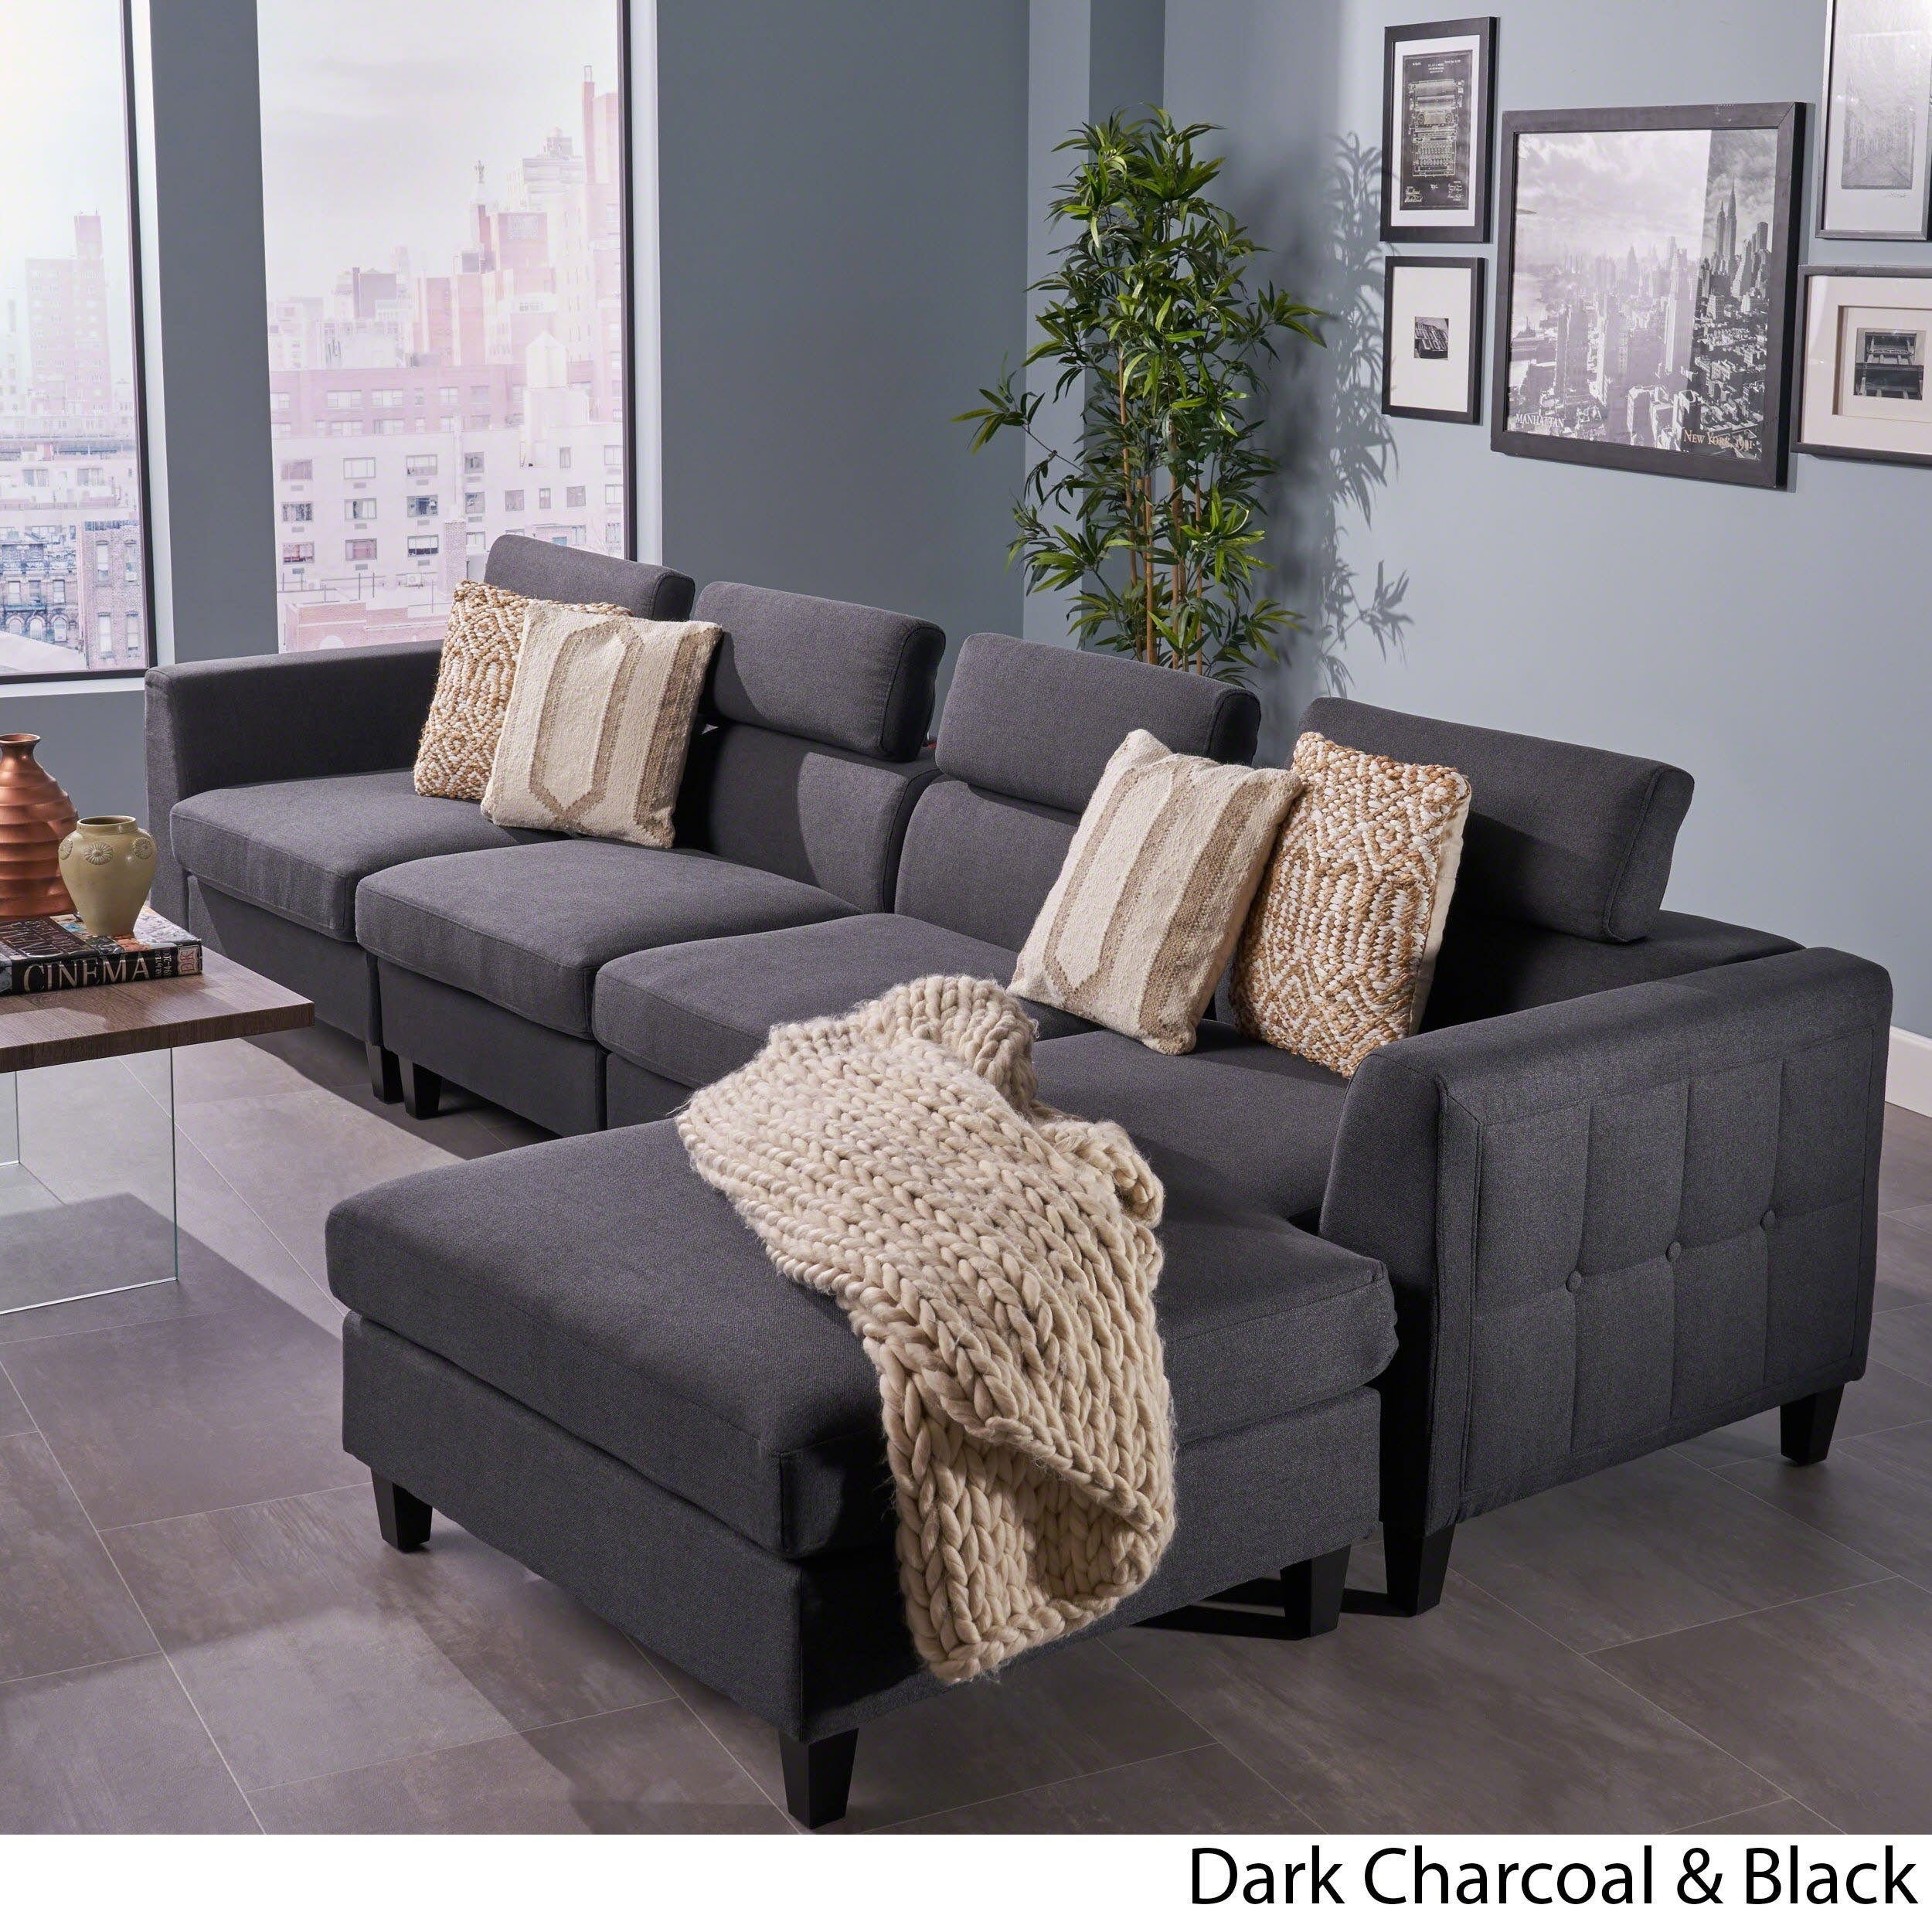 Amias modern 4 piece chaise sectional sofa set by christopher knight home